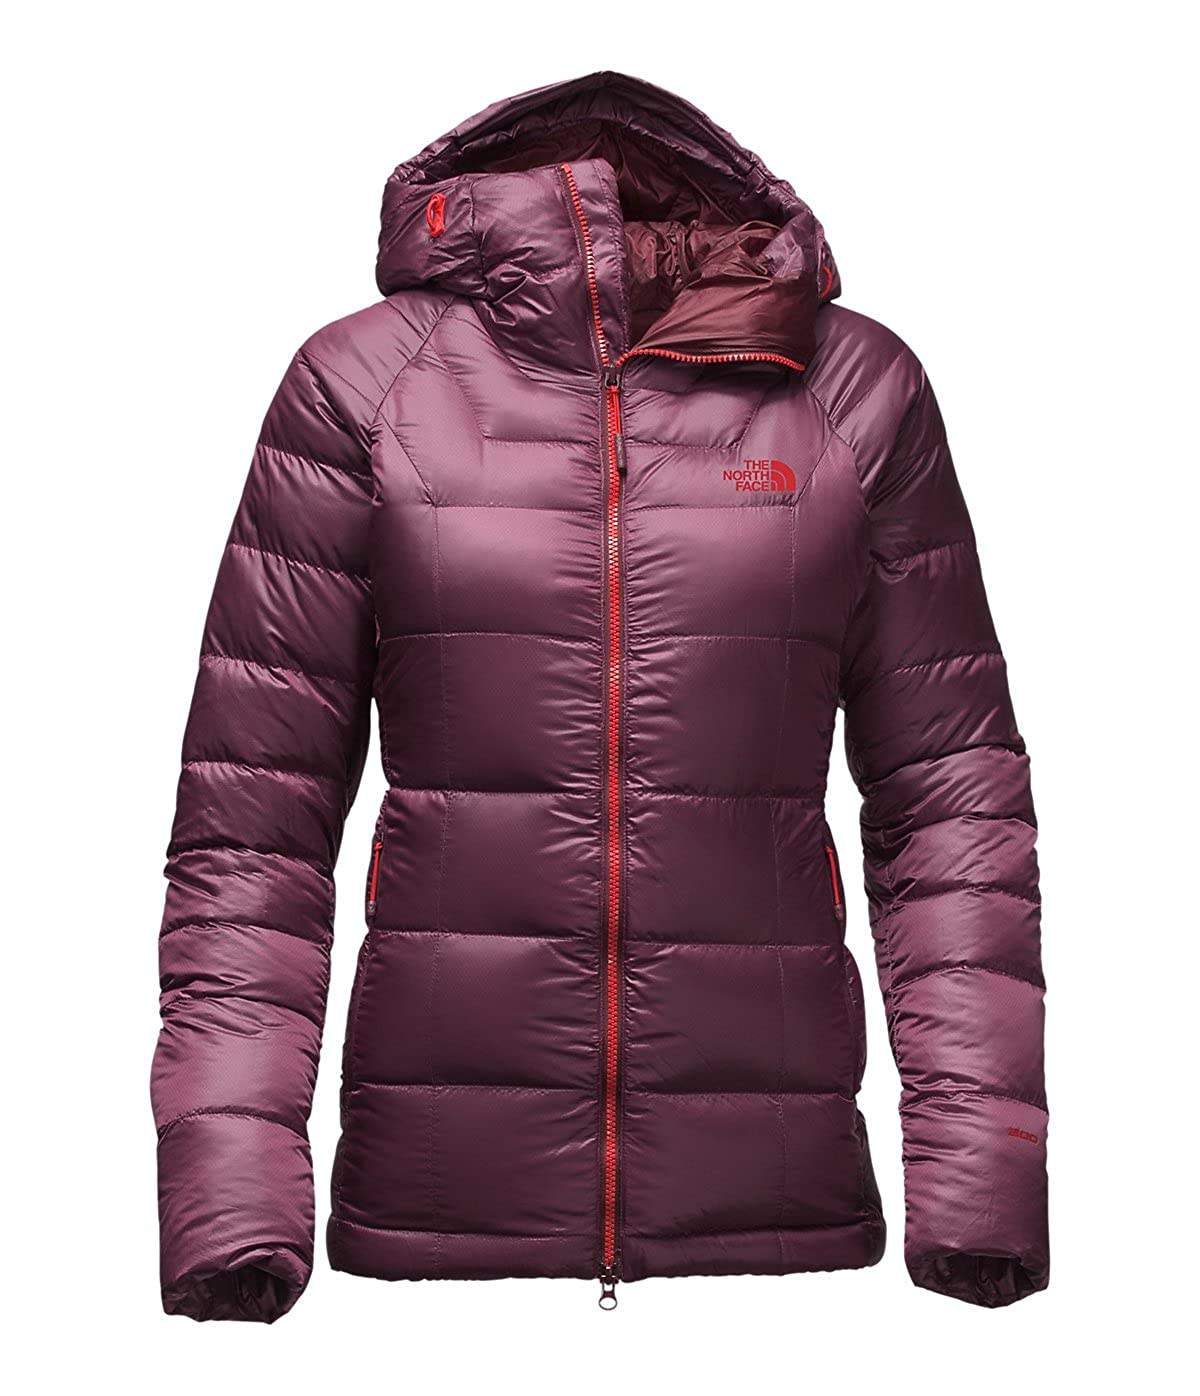 d8ba54fb5 North Face Women's W Immaculator Parka: Amazon.co.uk: Clothing